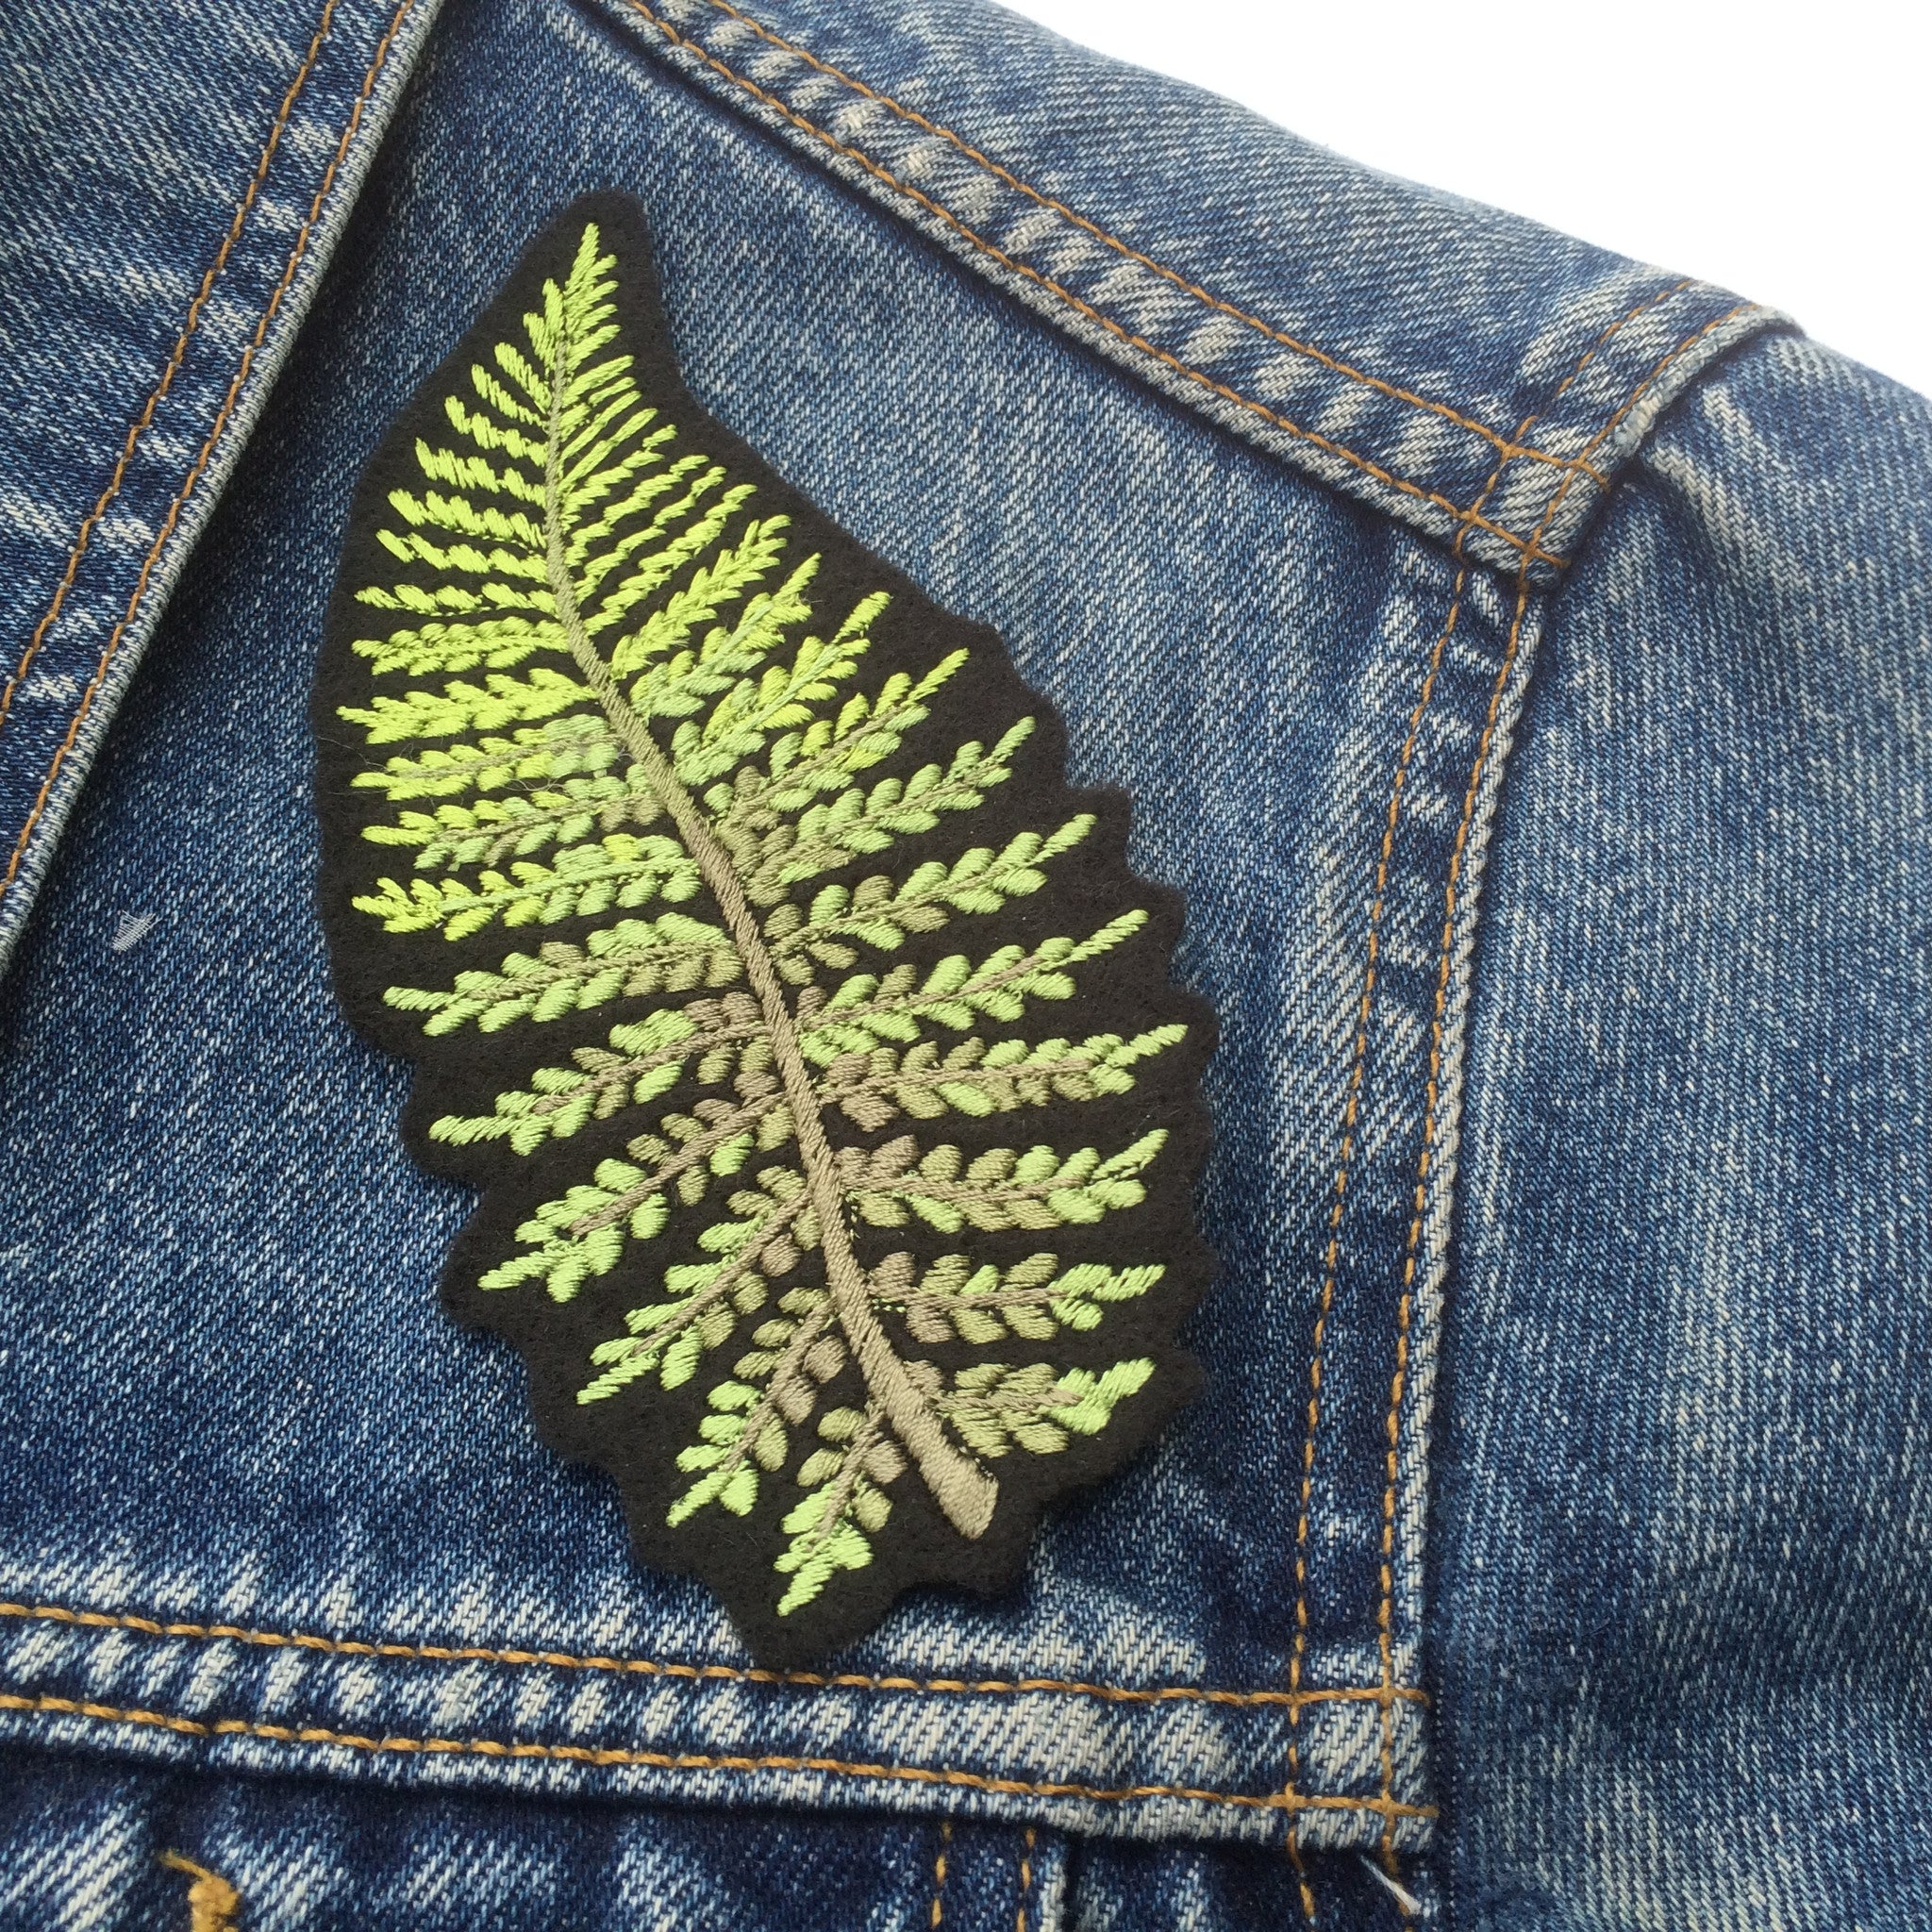 Fern embroidered patch ellie mac embroidery